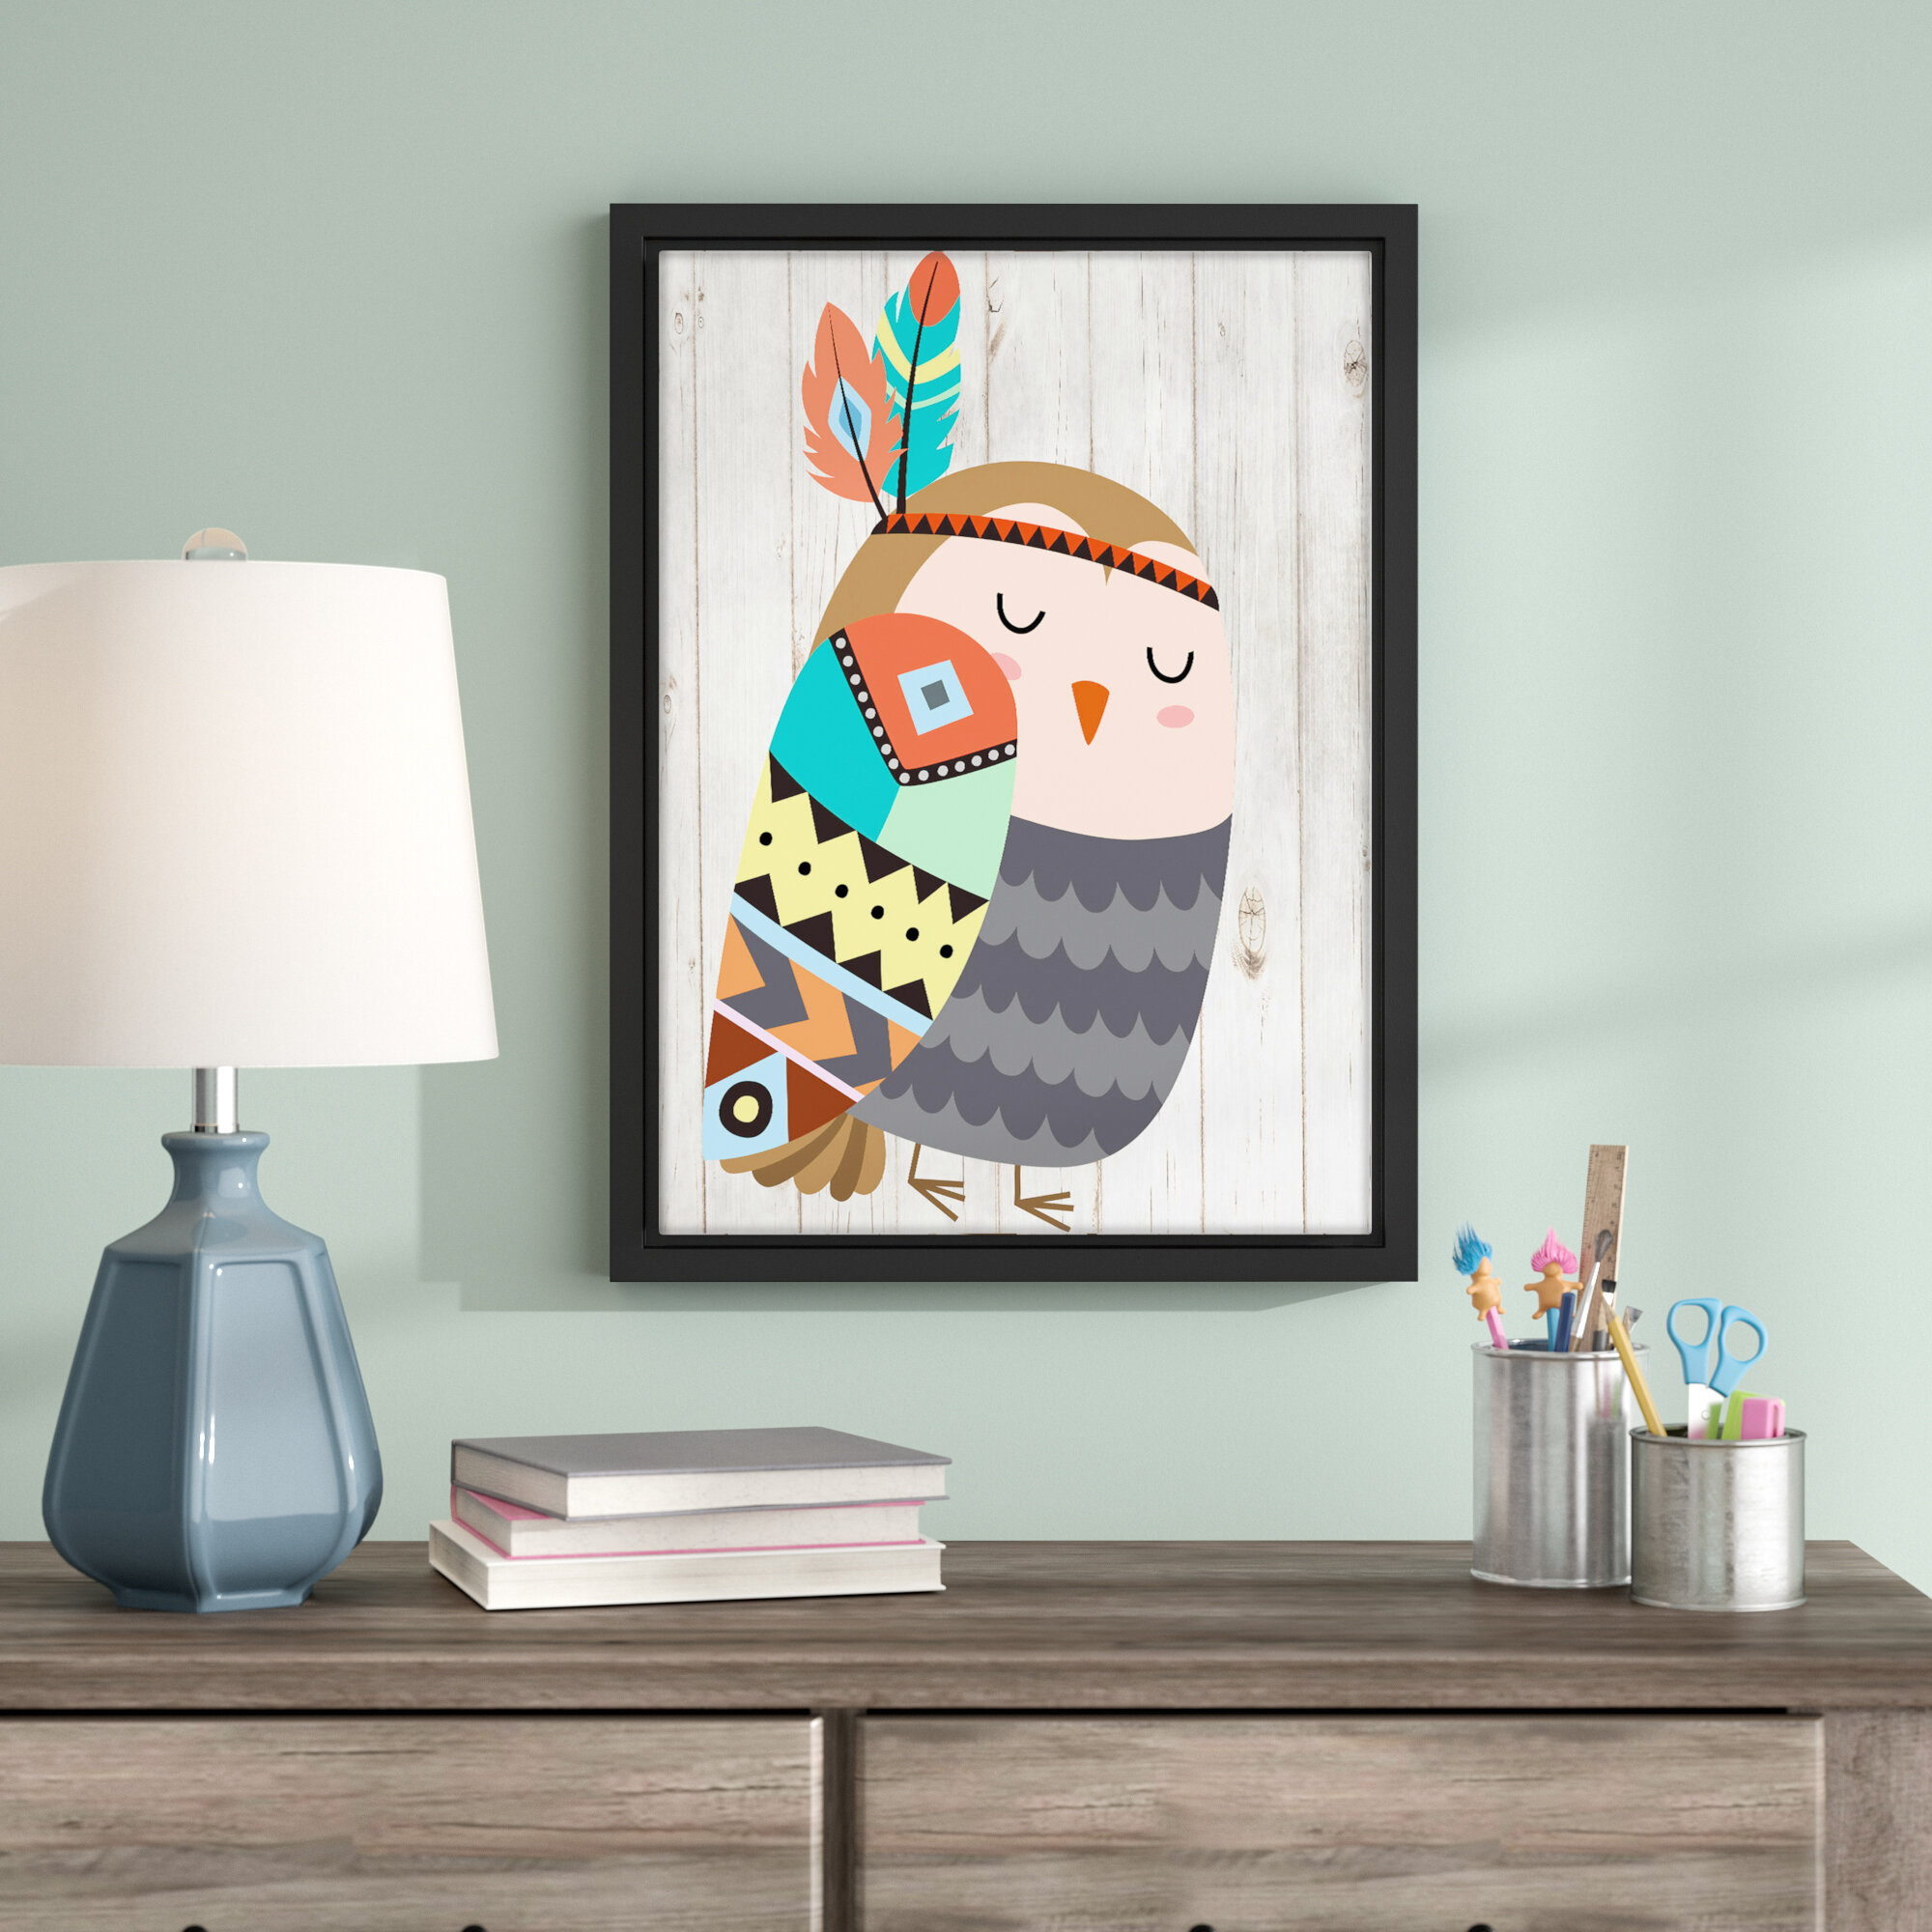 Viv Rae Aida Tribal Owl Ii Framed Art Wayfair